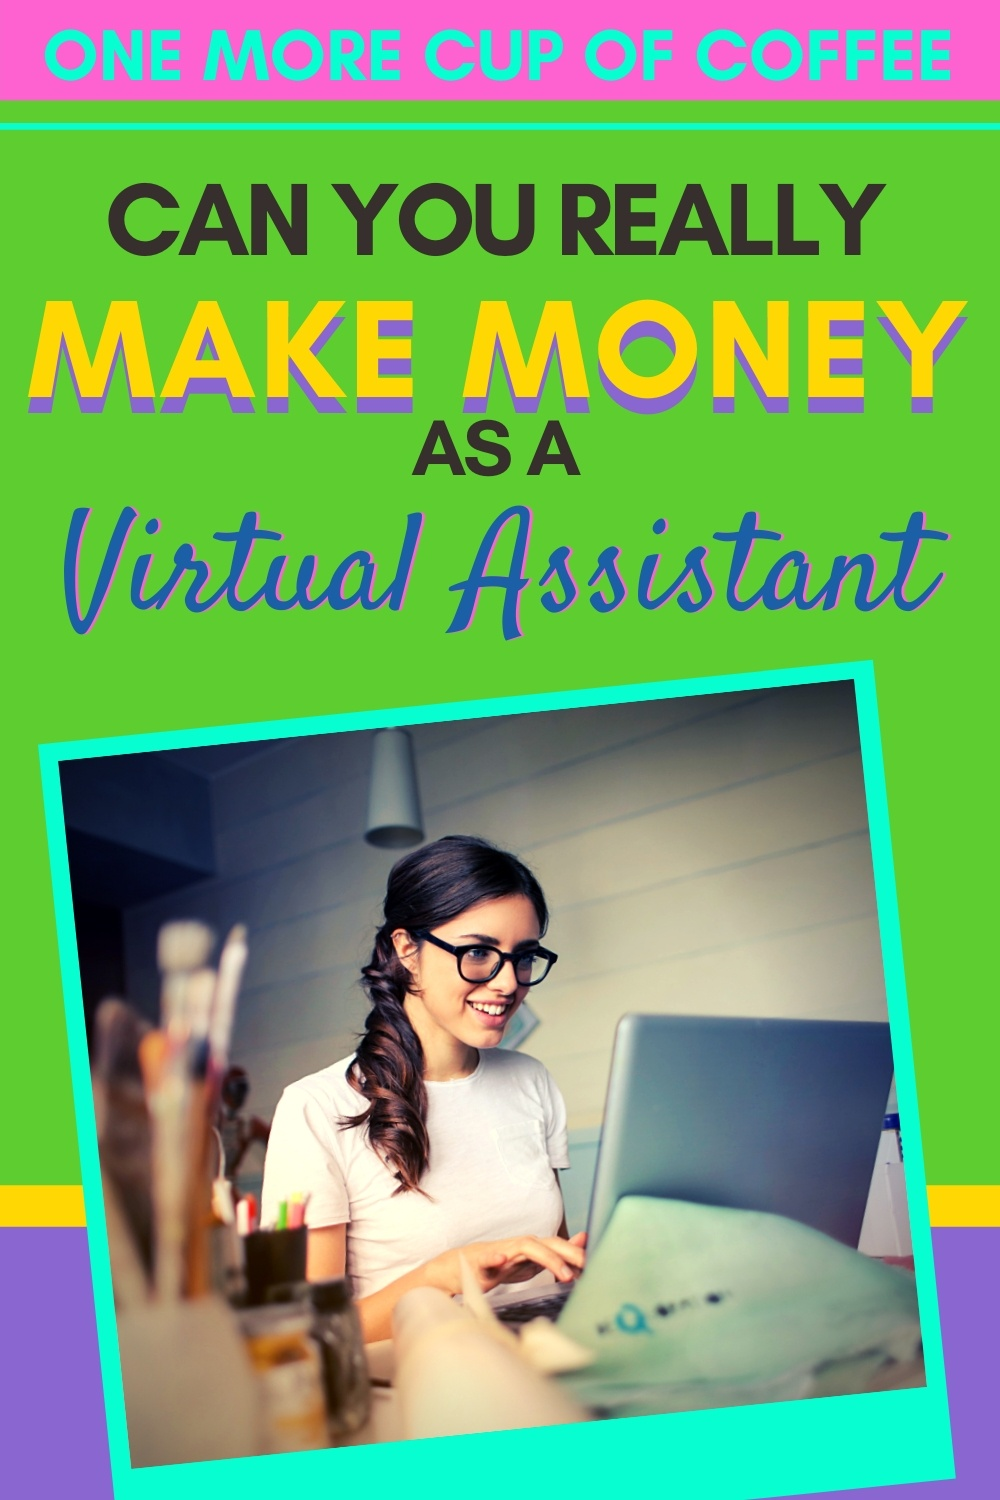 Woman working at her computer representing making money as a virtual assistant.